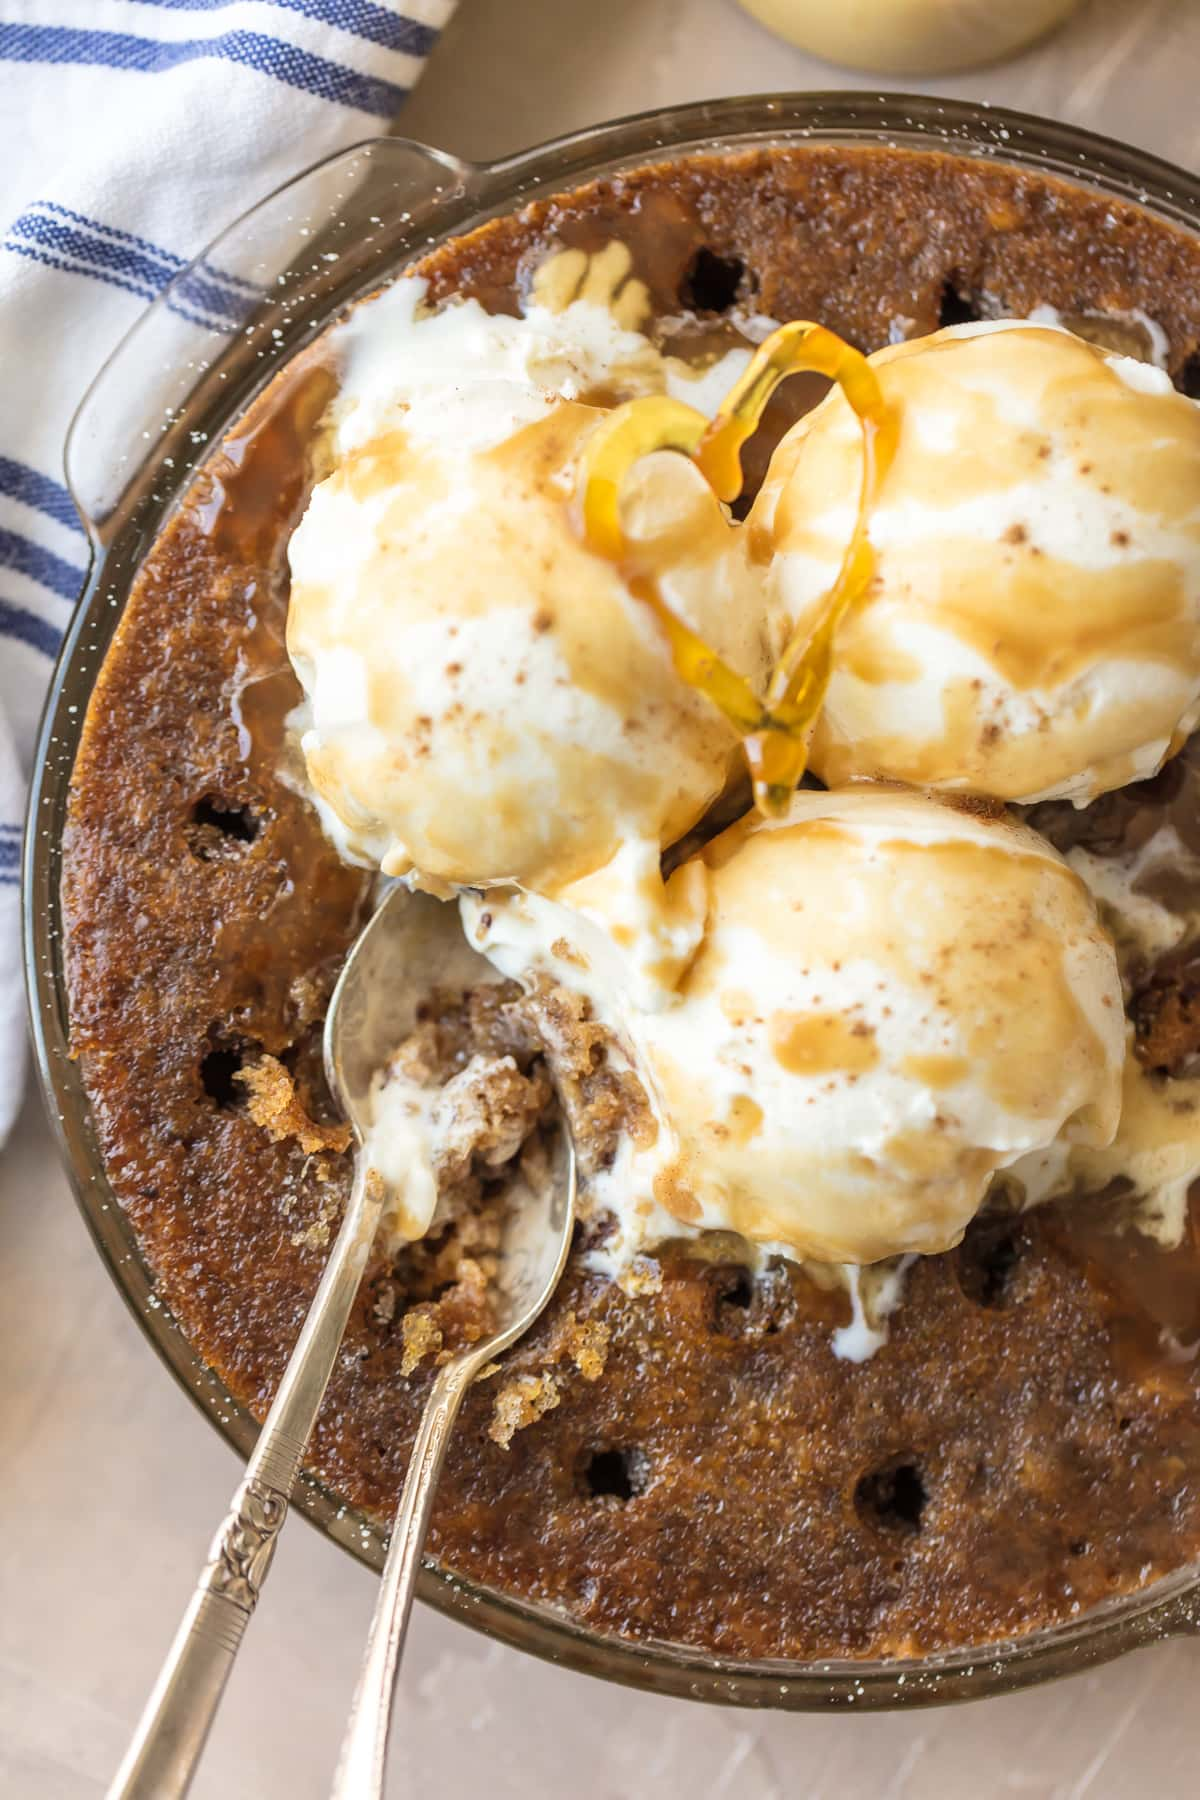 Toffee Pudding Poke Cake in a baking dish, topped with ice cream